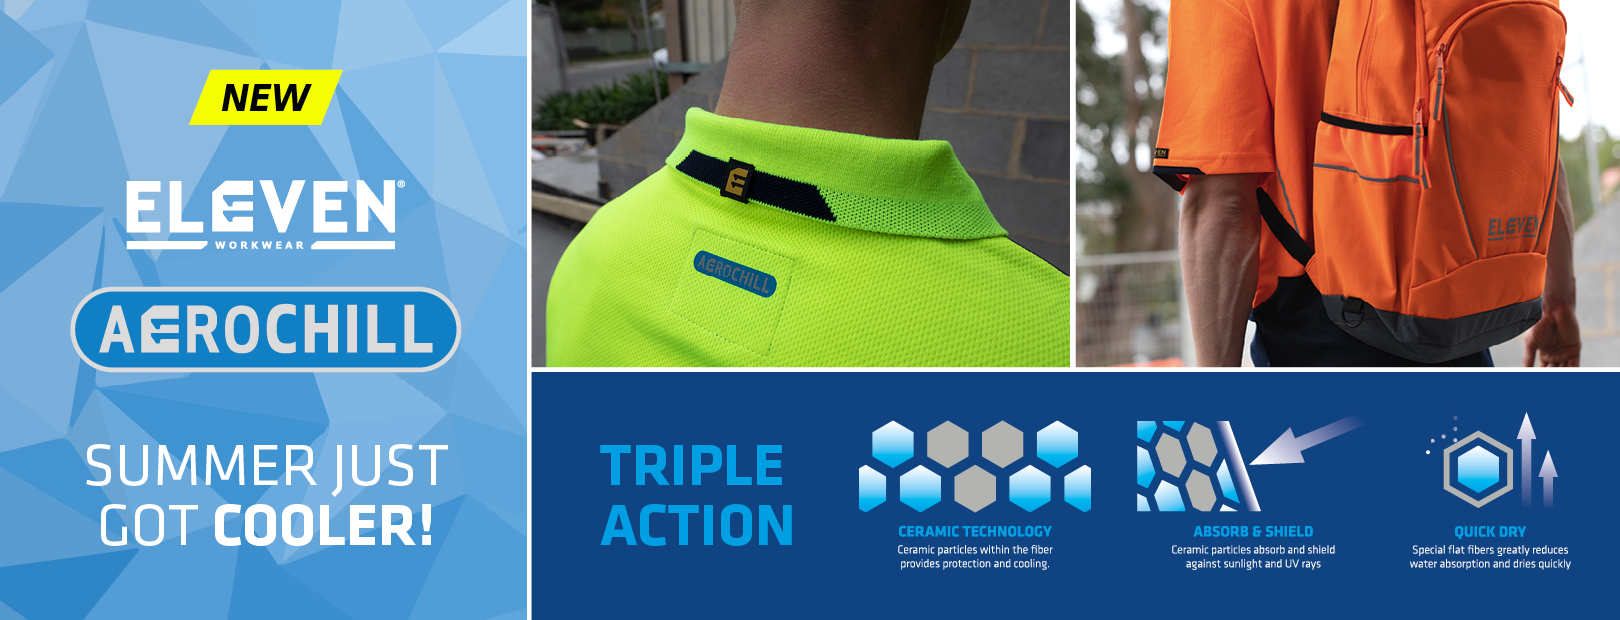 ELEVEN Workwear AEROCHILL at RSEA Safety Online - The Safety Experts